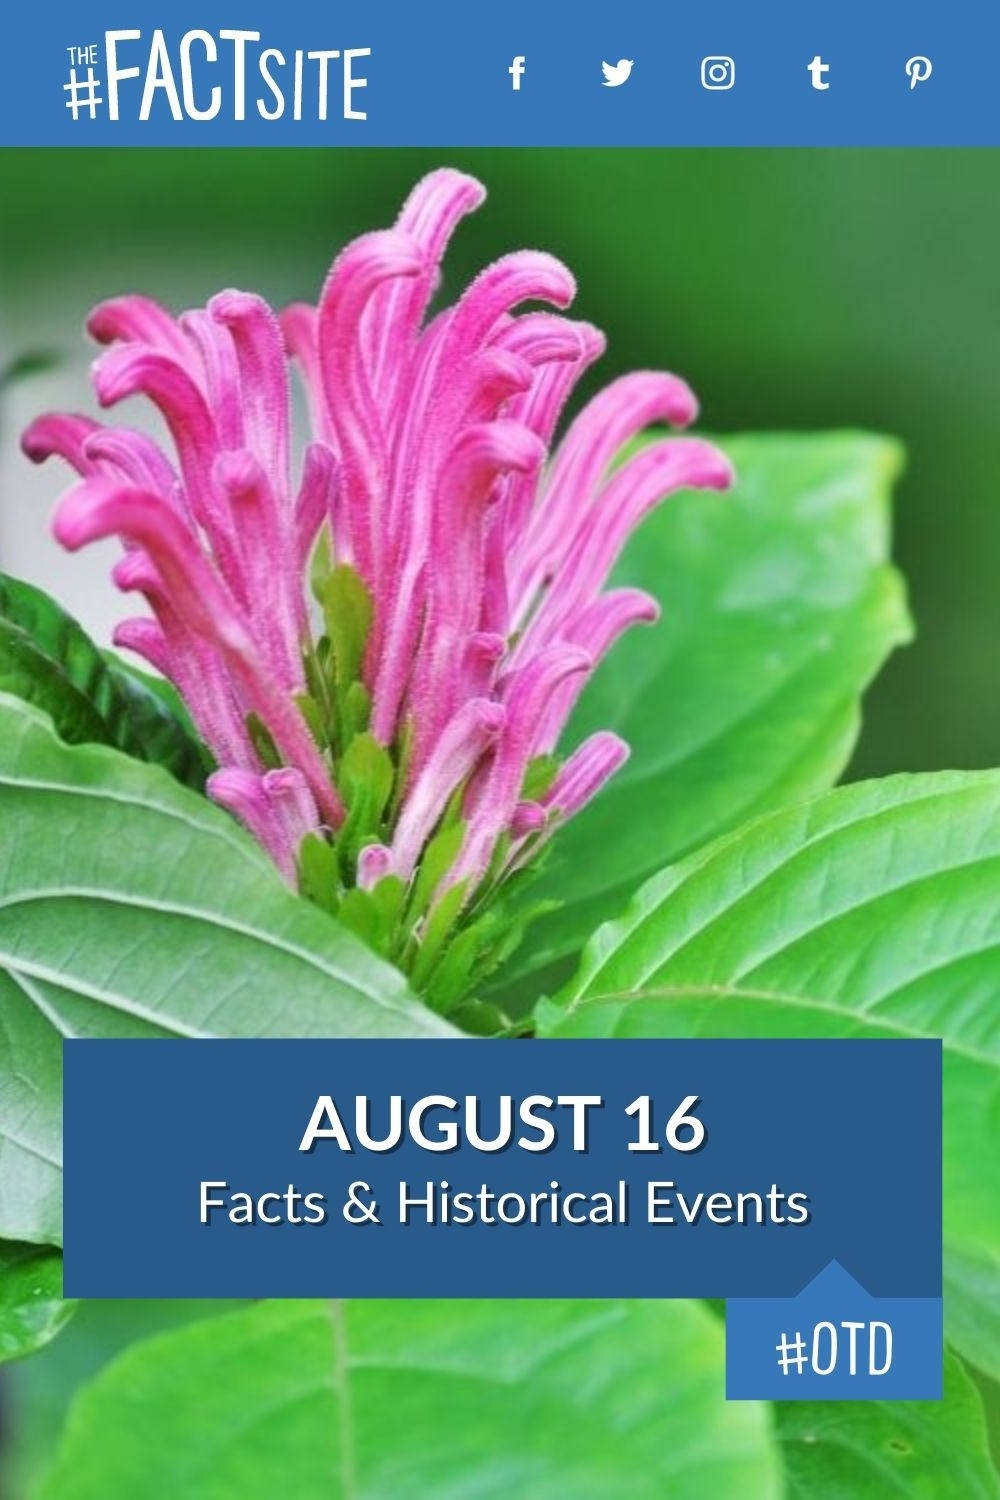 Facts & Historic Events That Happened on August 16